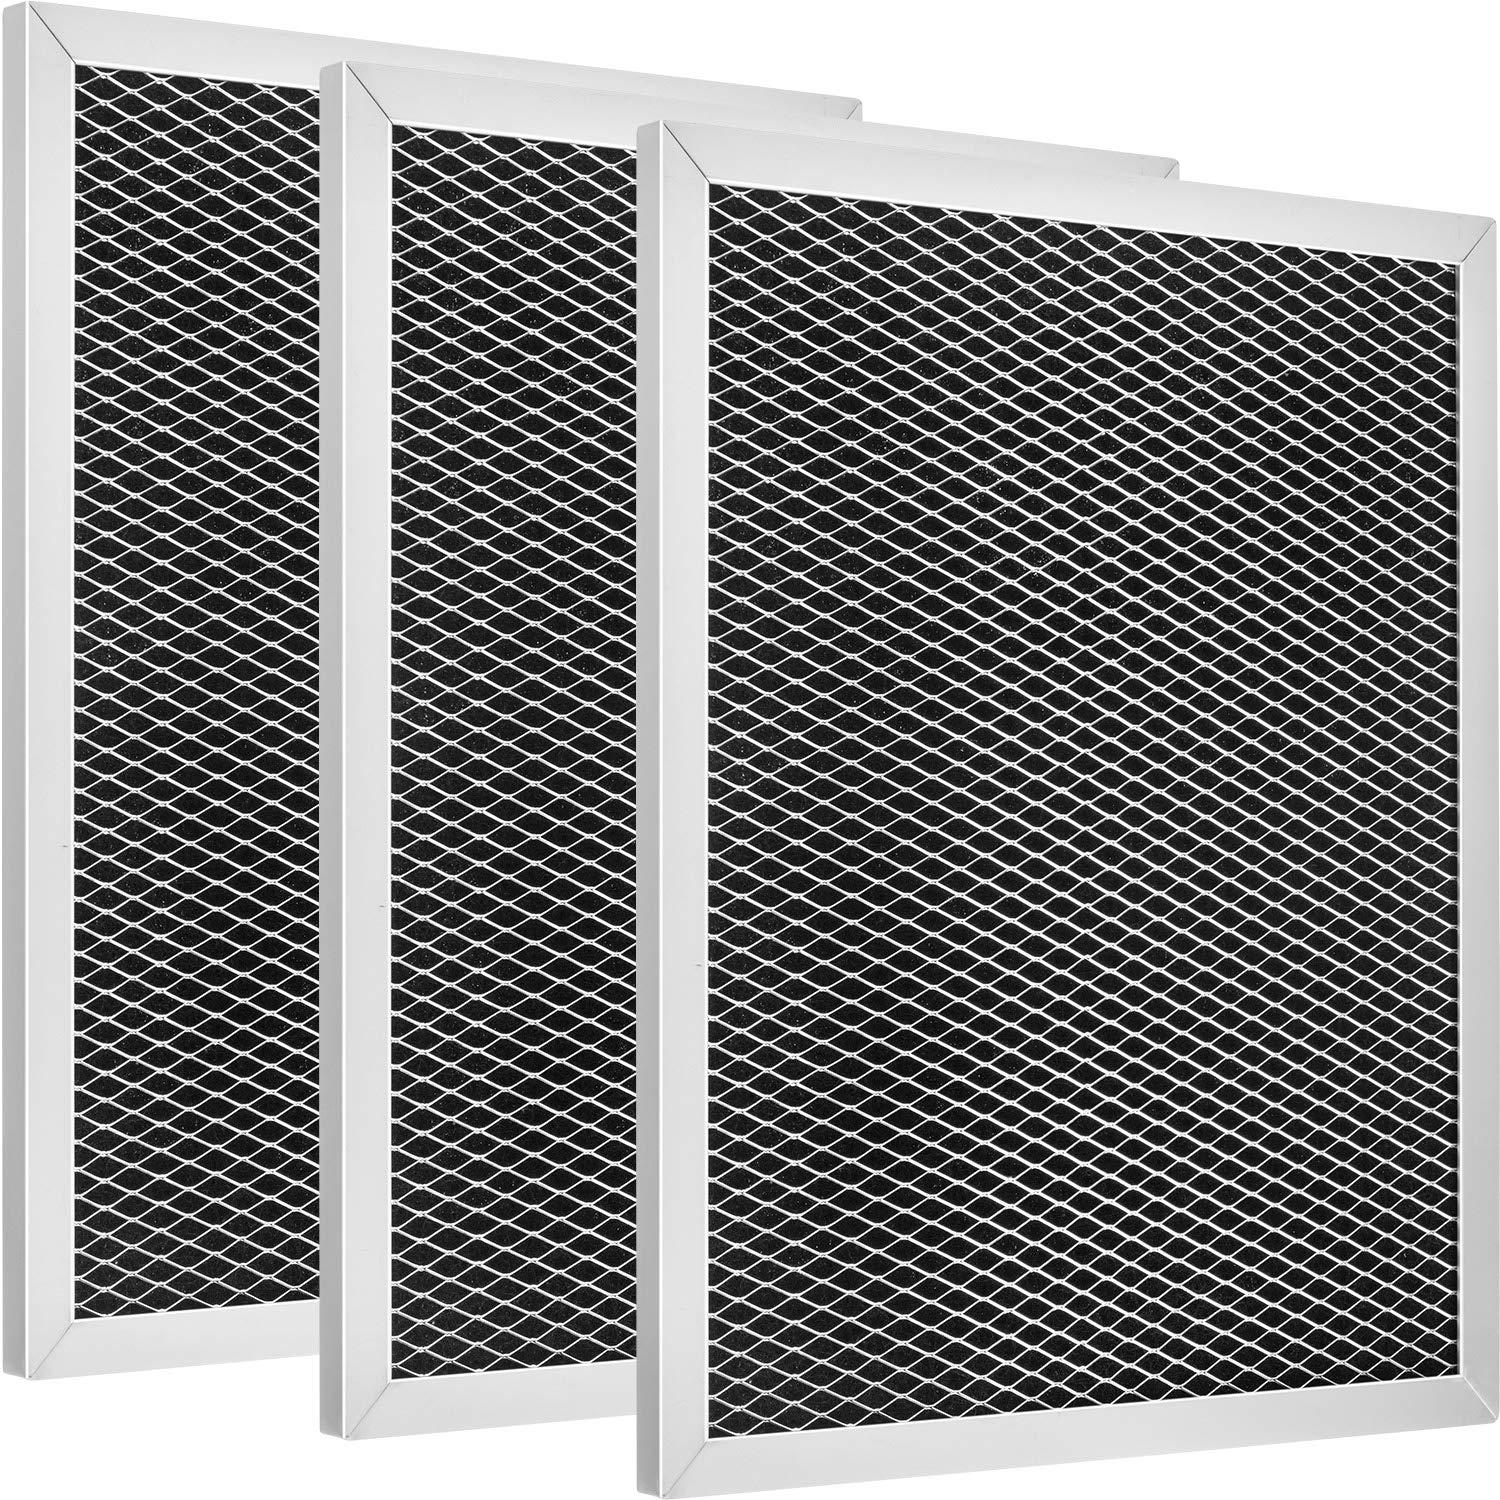 3 Pack 97007696 Aluminum Charcoal Combo Range Hood Filter Compatible with Broan, Kenmore, Maytag, Replace for 1172266, 41F, 5-3082, 51113711, Size 8-3/4 x 10-1/2 x 3/8 Inch